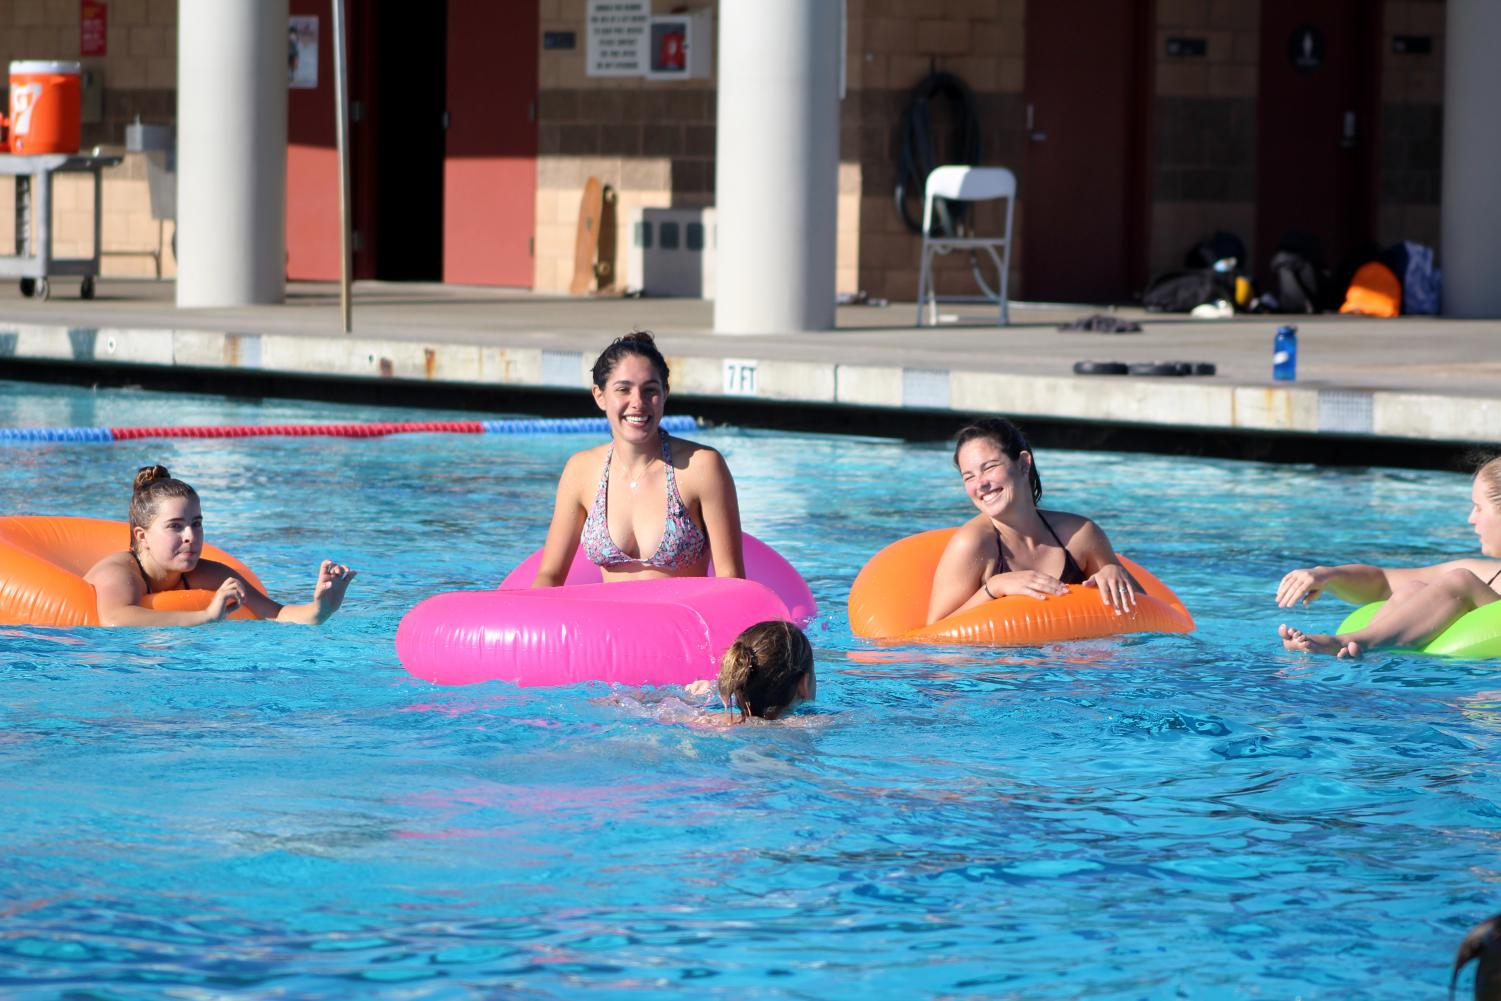 Senior Morgan Snyder (left) laughs with her team as they watch other participants get ready to shoot at intramural sport's innertube water polo tournament.